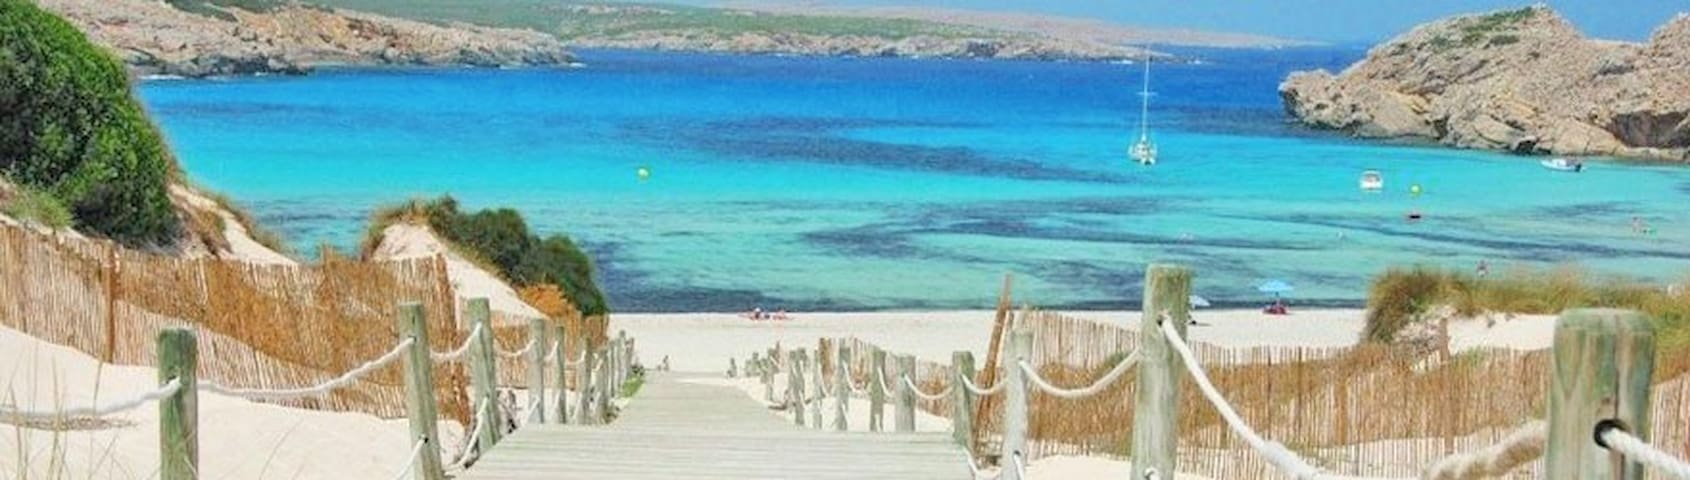 Playa y golf en Menorca - Son Parc